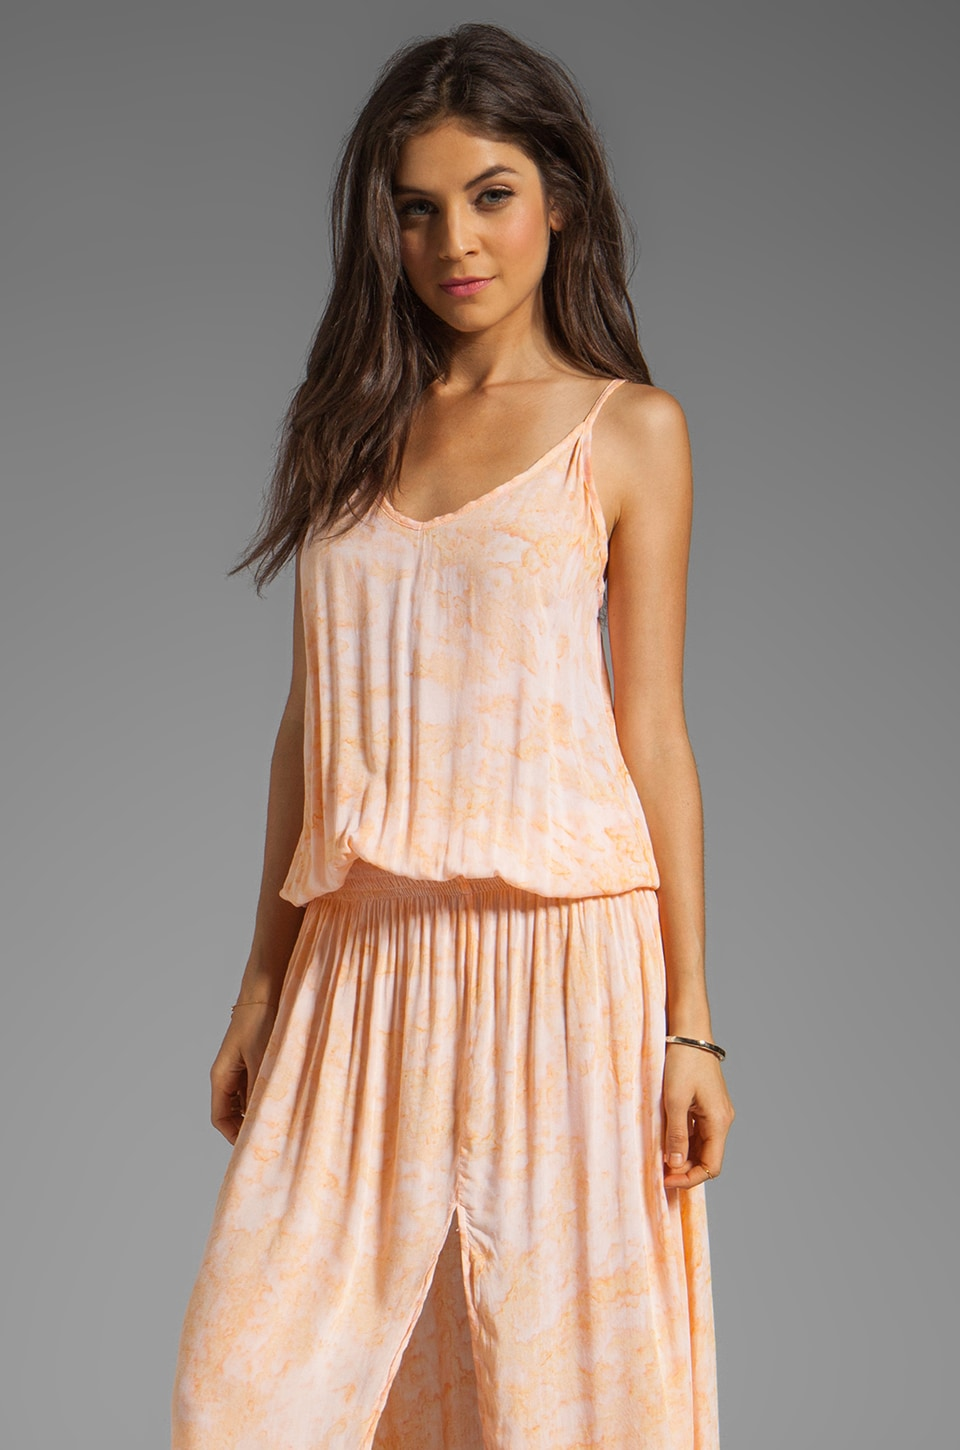 Tiare Hawaii Copacabana Drop Waist Dress in Melon Smoke